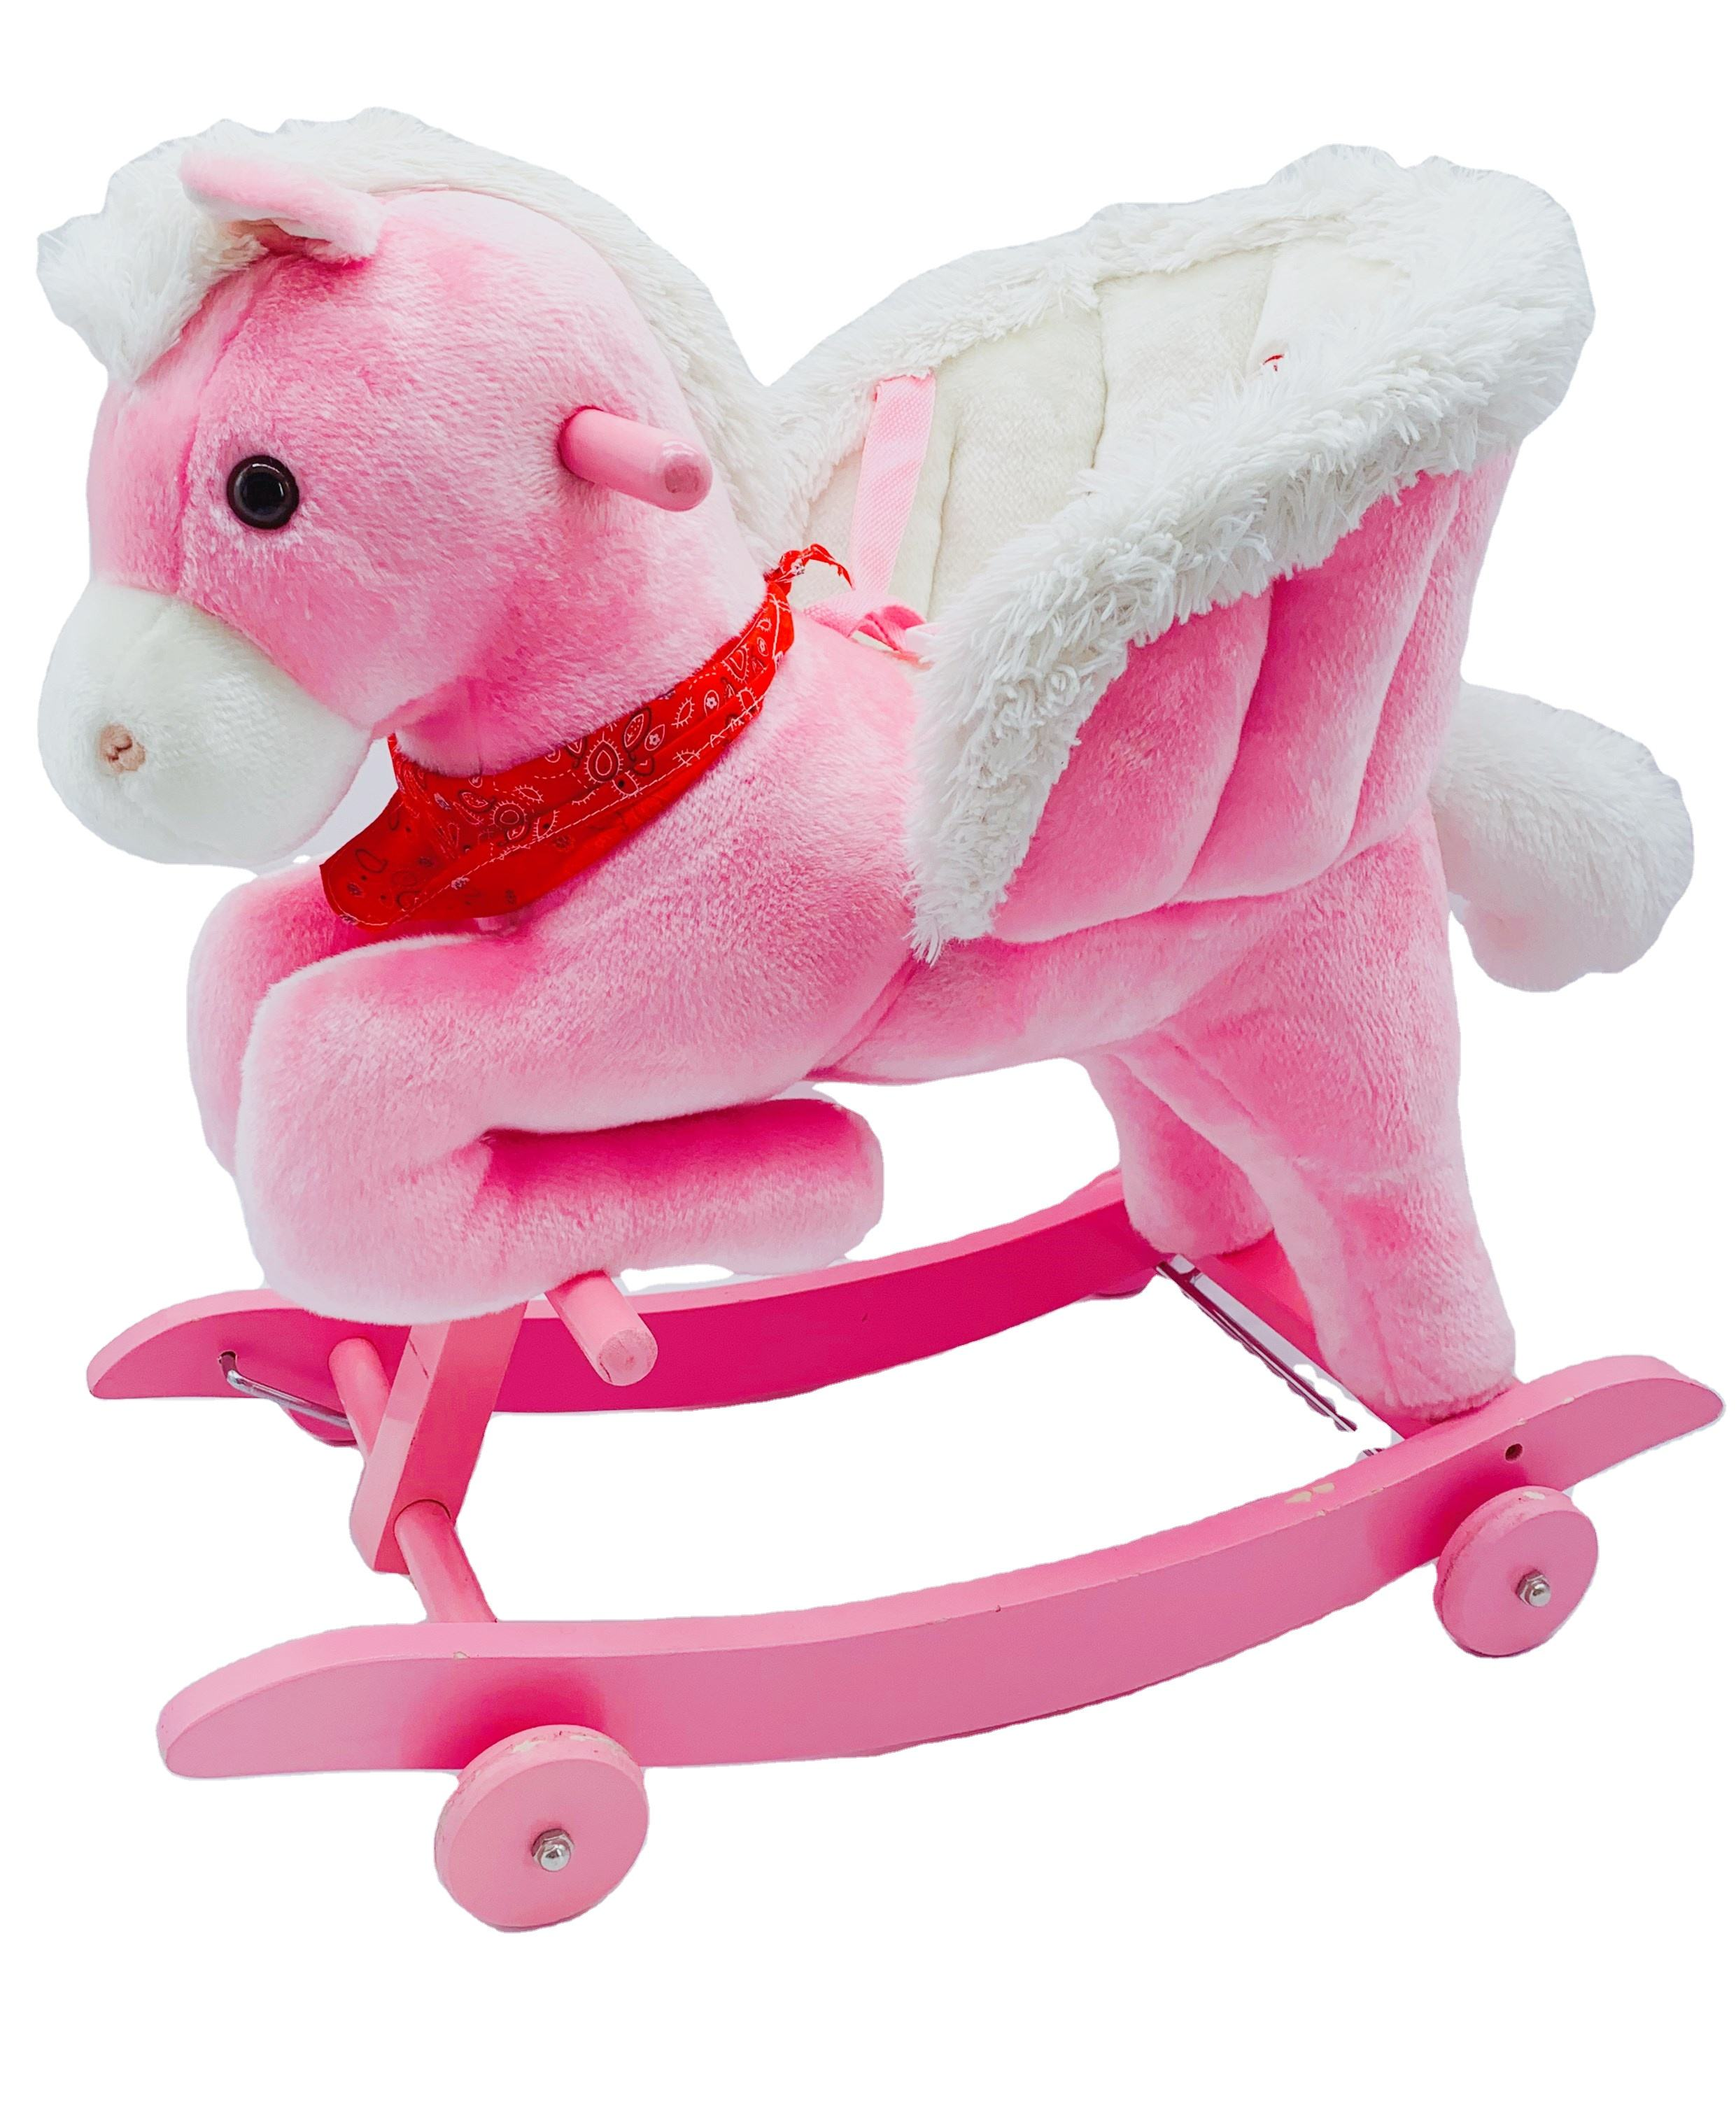 Softer plush with wooden frame and wheel kids Rocking Horse with sound playing for children toy